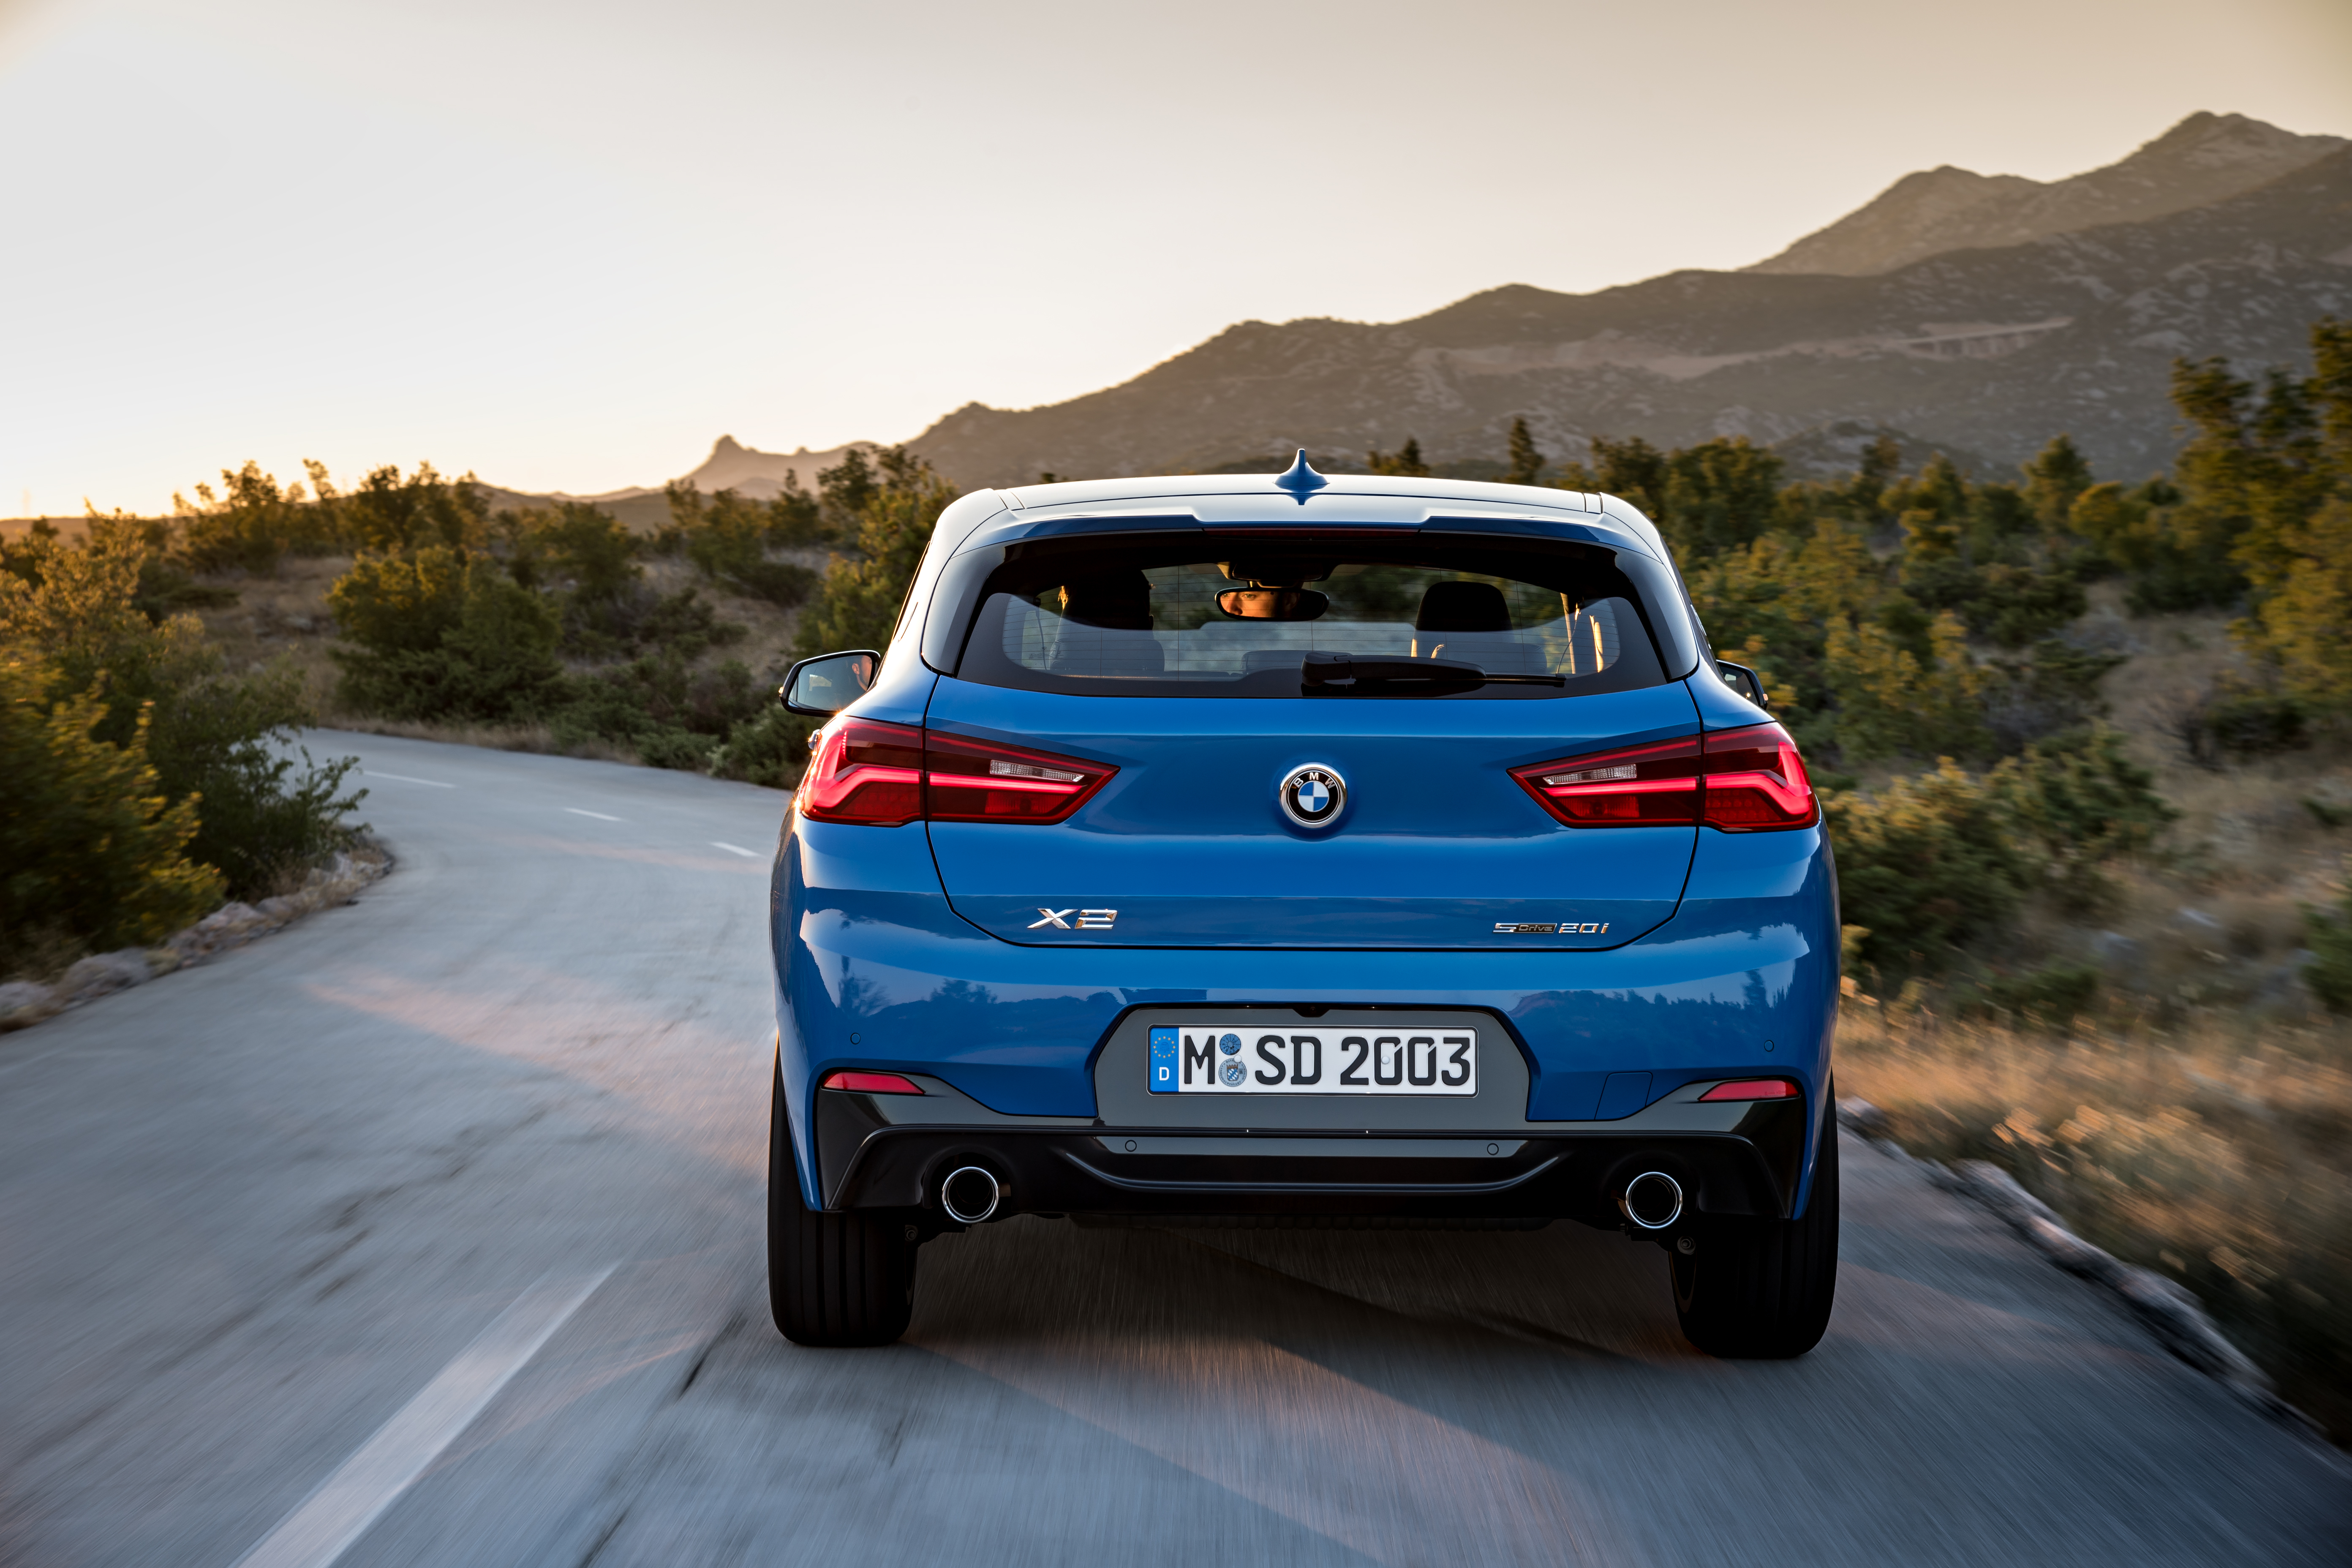 f39 bmw x2 unveiled with new m sport x package image 728987. Black Bedroom Furniture Sets. Home Design Ideas